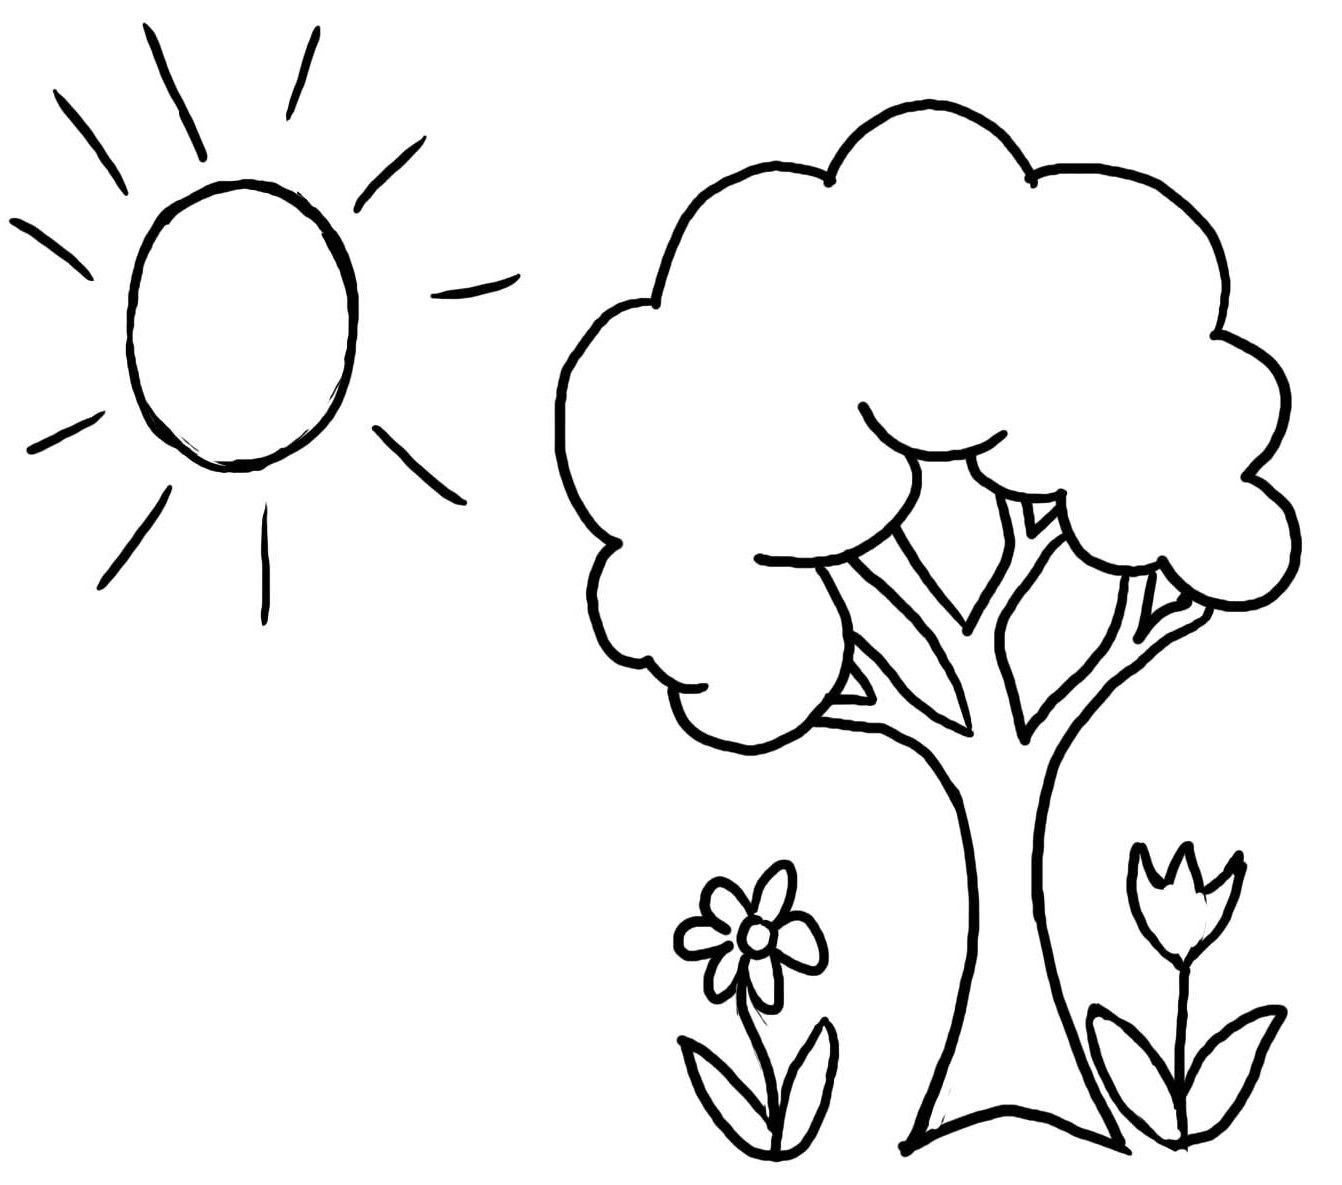 Best ideas about Tree Coloring Sheets For Kids . Save or Pin Tree Coloring Pages Now.